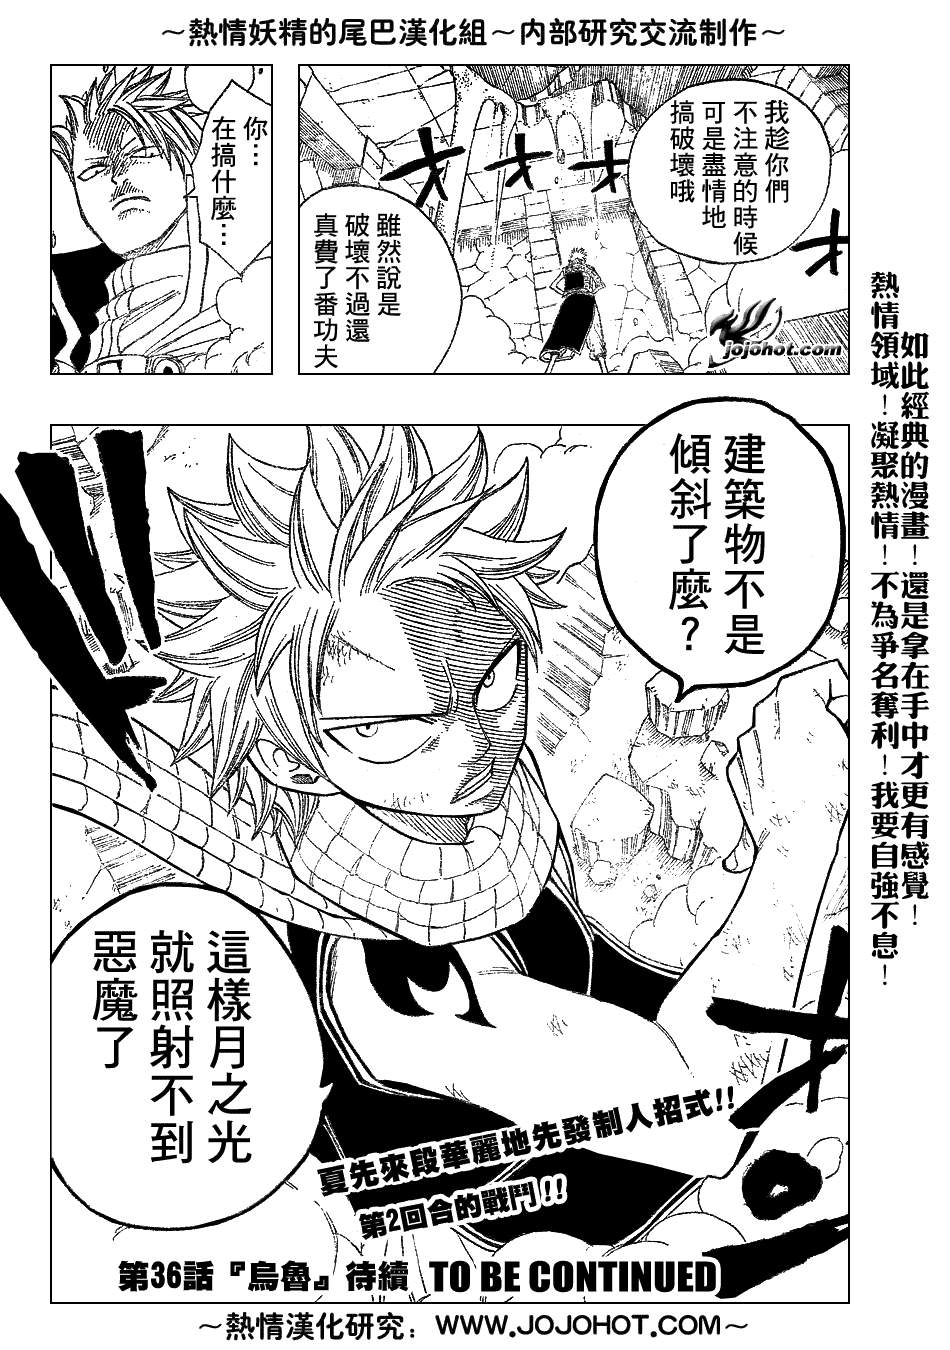 fairytail_35_20